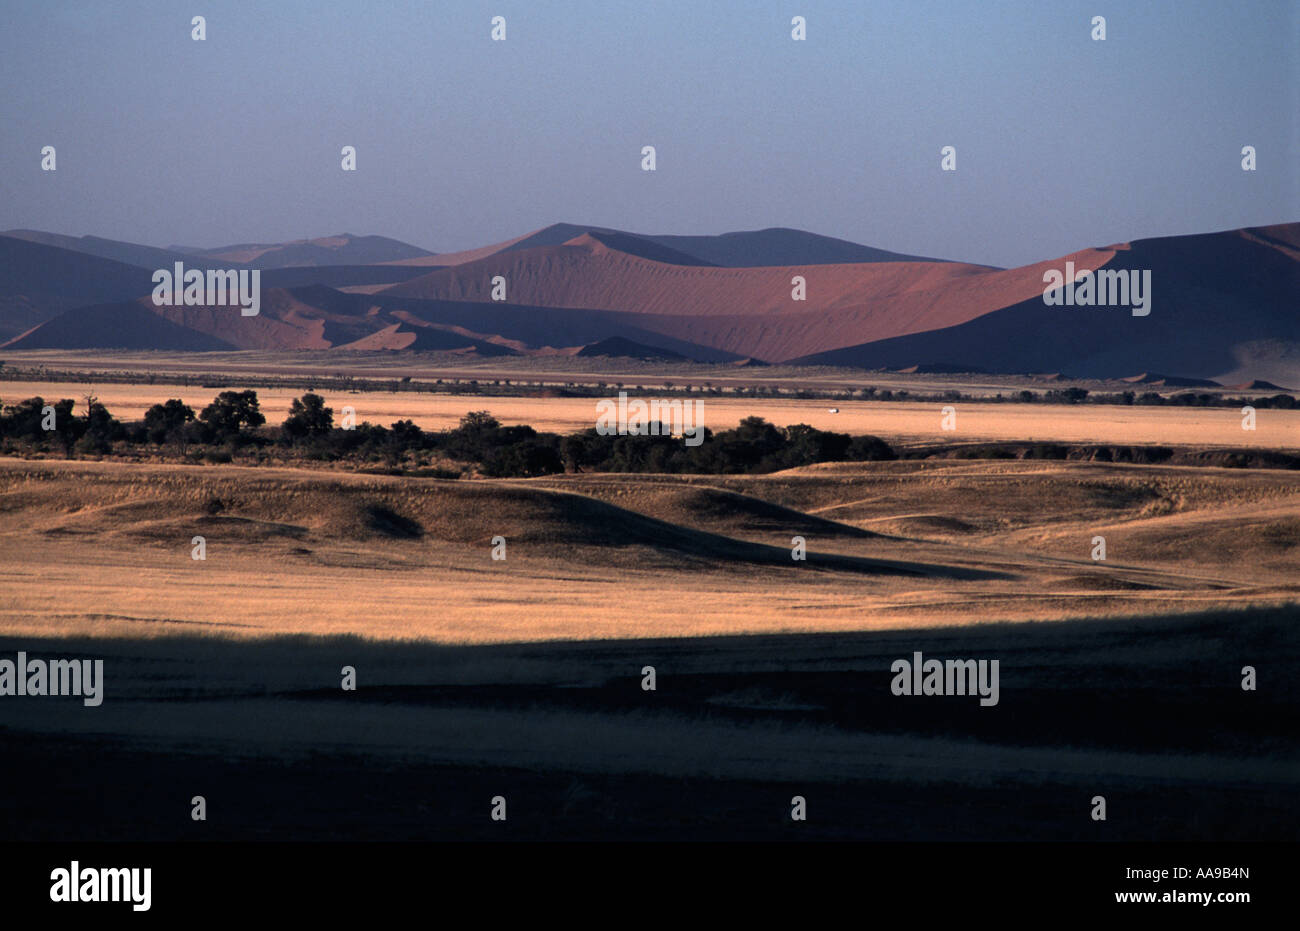 Sand dunes and surrounding landscape at sunrise Namib Naukluft National Park en route to Dune 45 and Sossusvlei - Stock Image